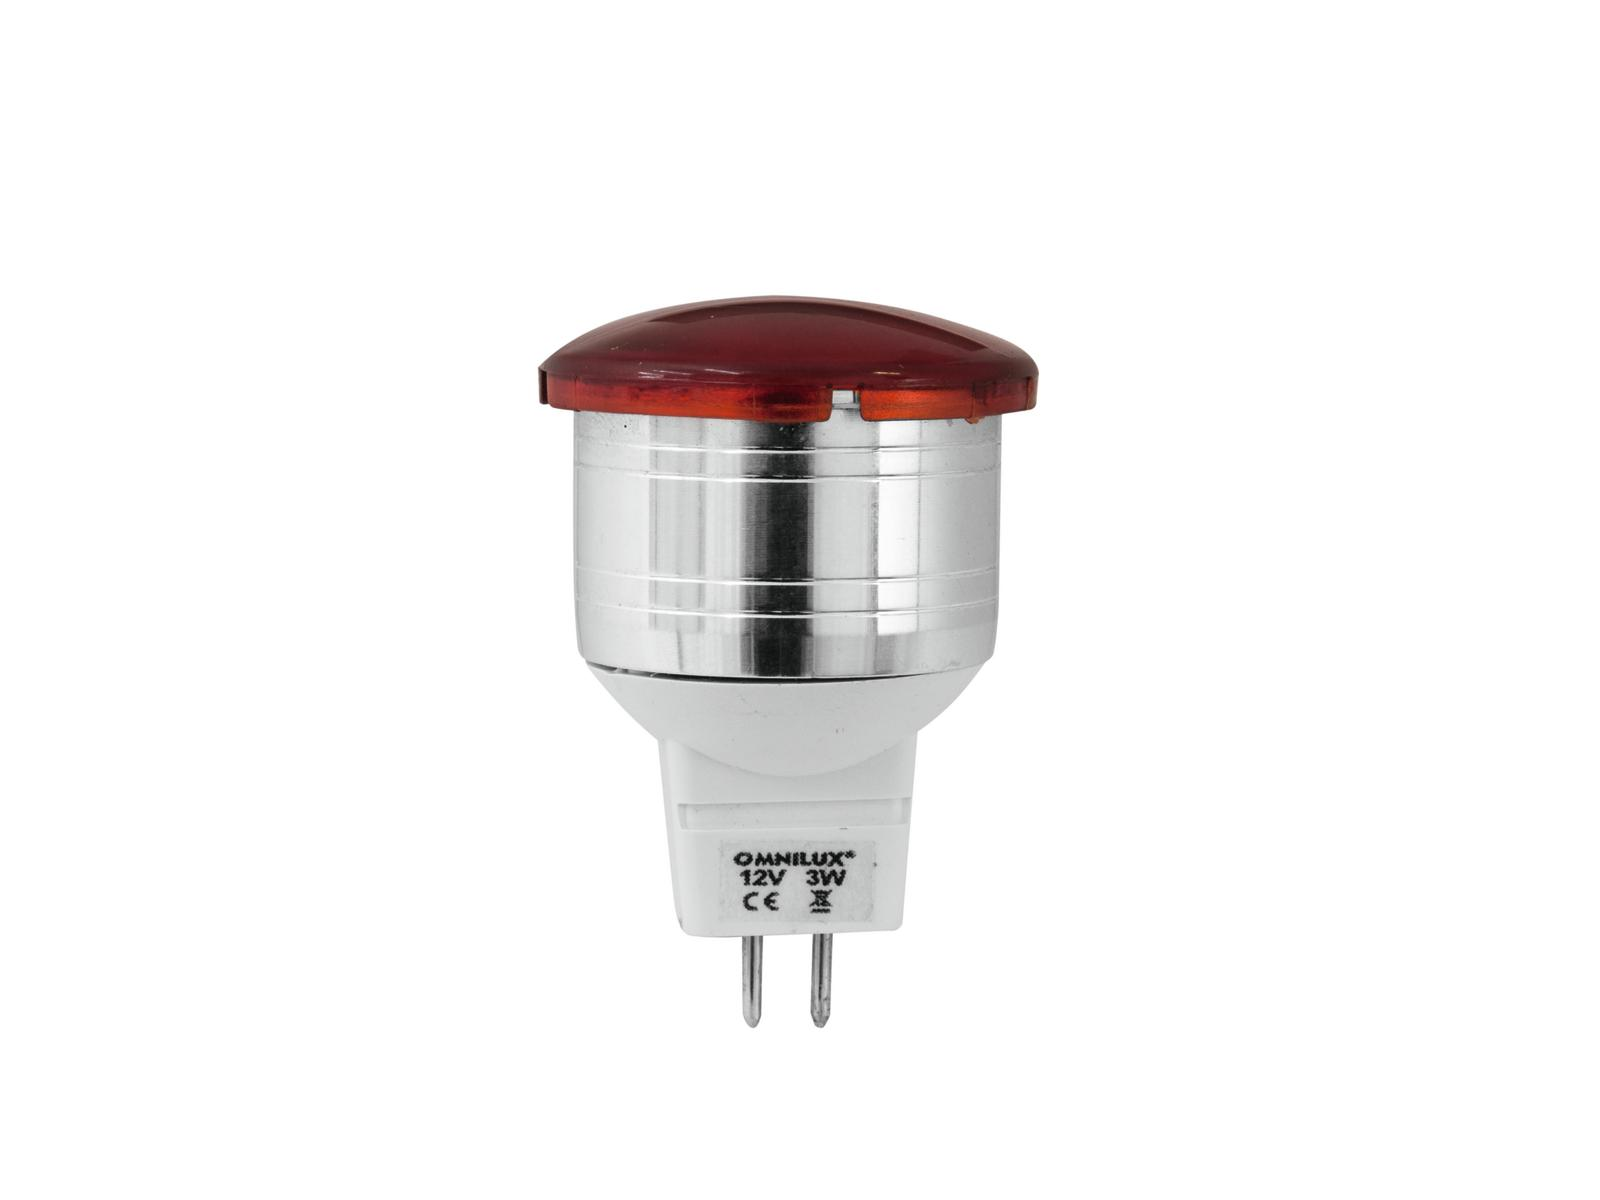 OMNILUX LED MR-11 12V/3W G-4 r